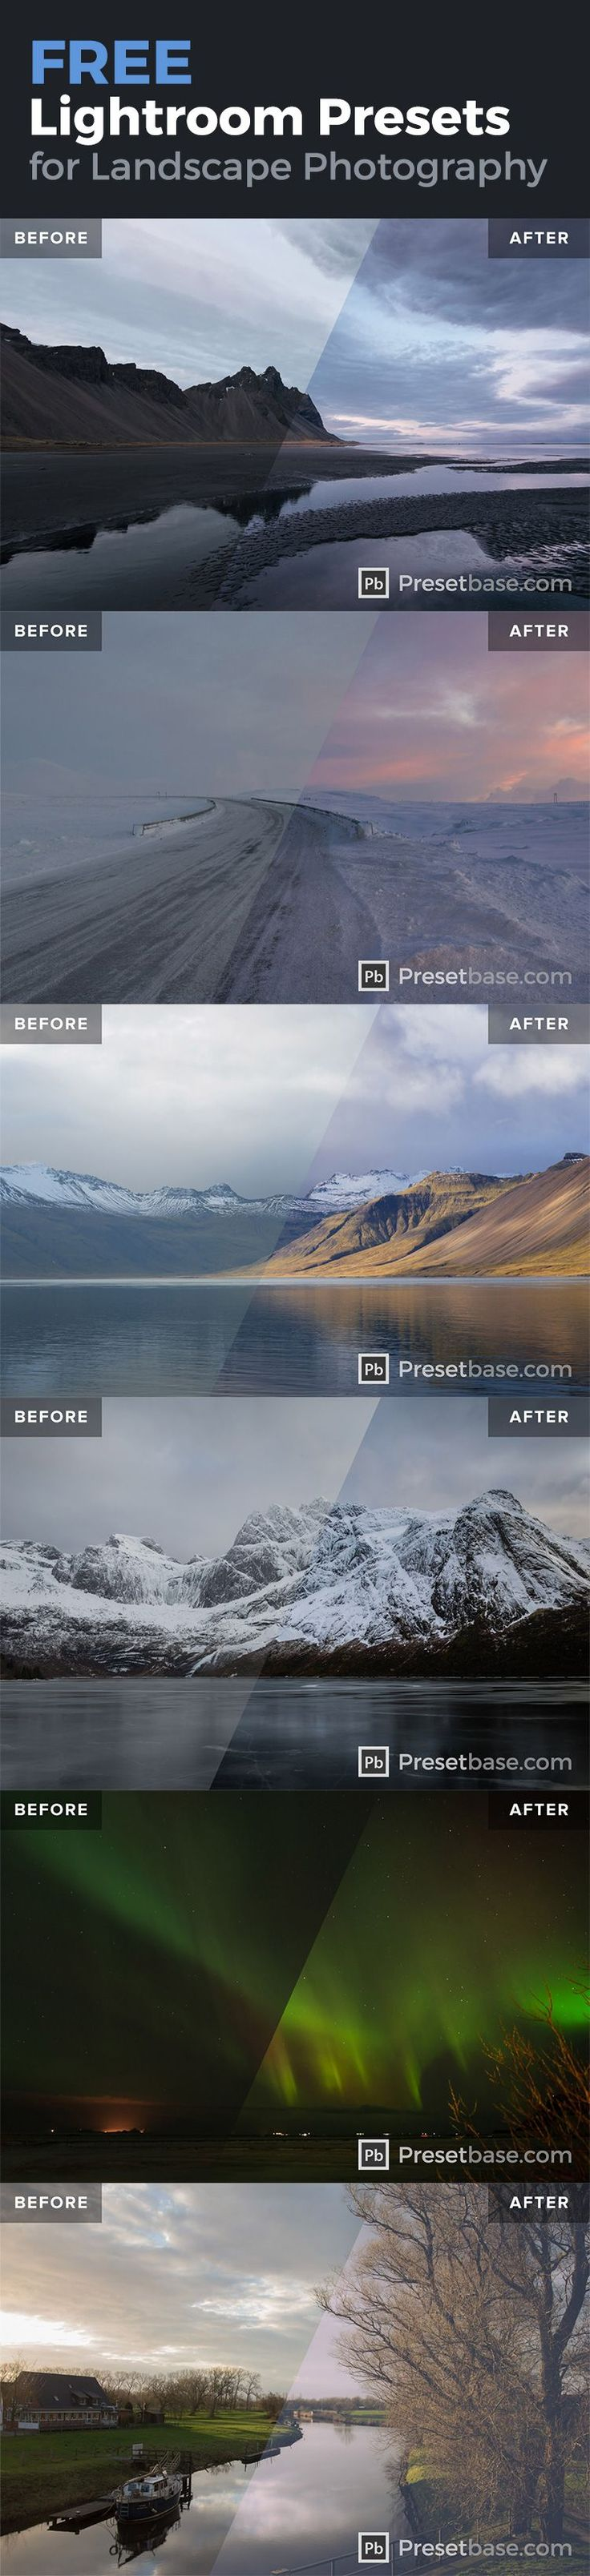 A collection of *FREE* Lightroom Presets for Landscape and Travel Photography…